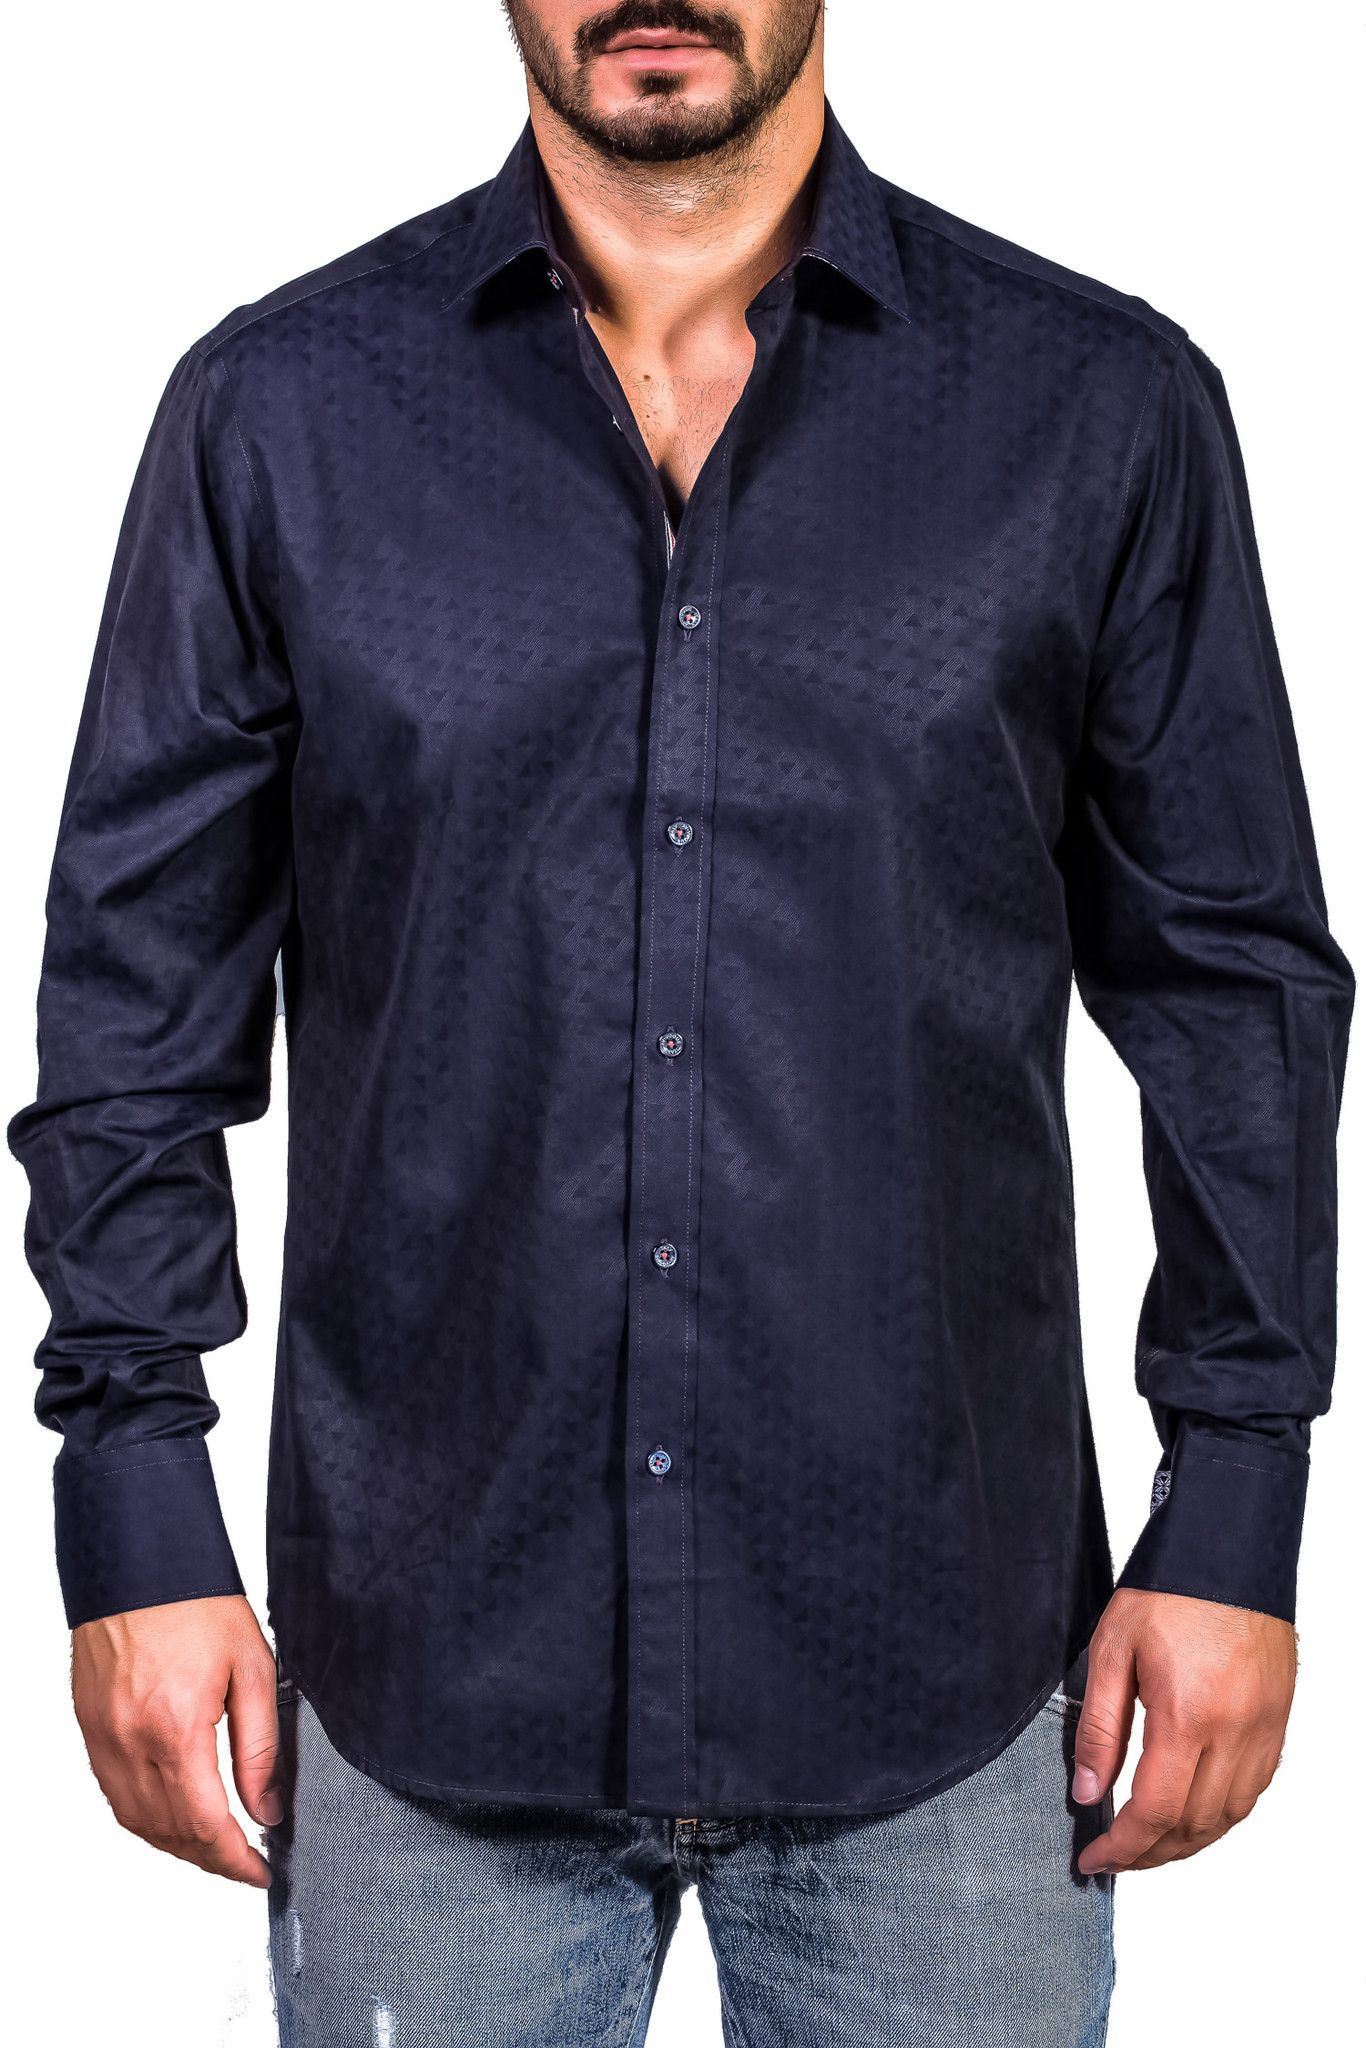 Autocratic Vogue men fashion shirt - Makalu